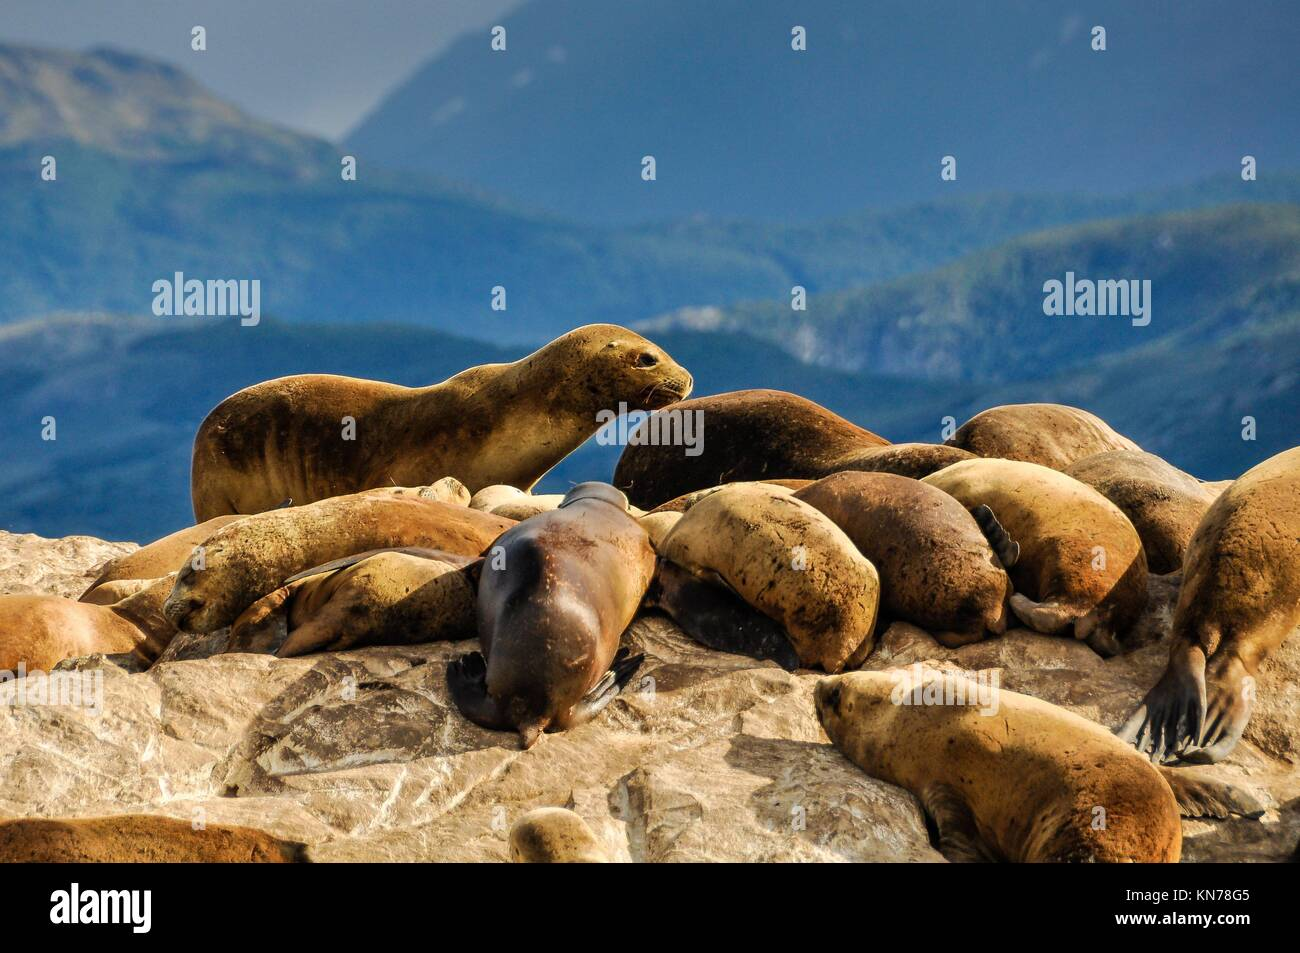 Seals and sea lions, Beagle Channel, Ushuaia, Argentina. - Stock Image